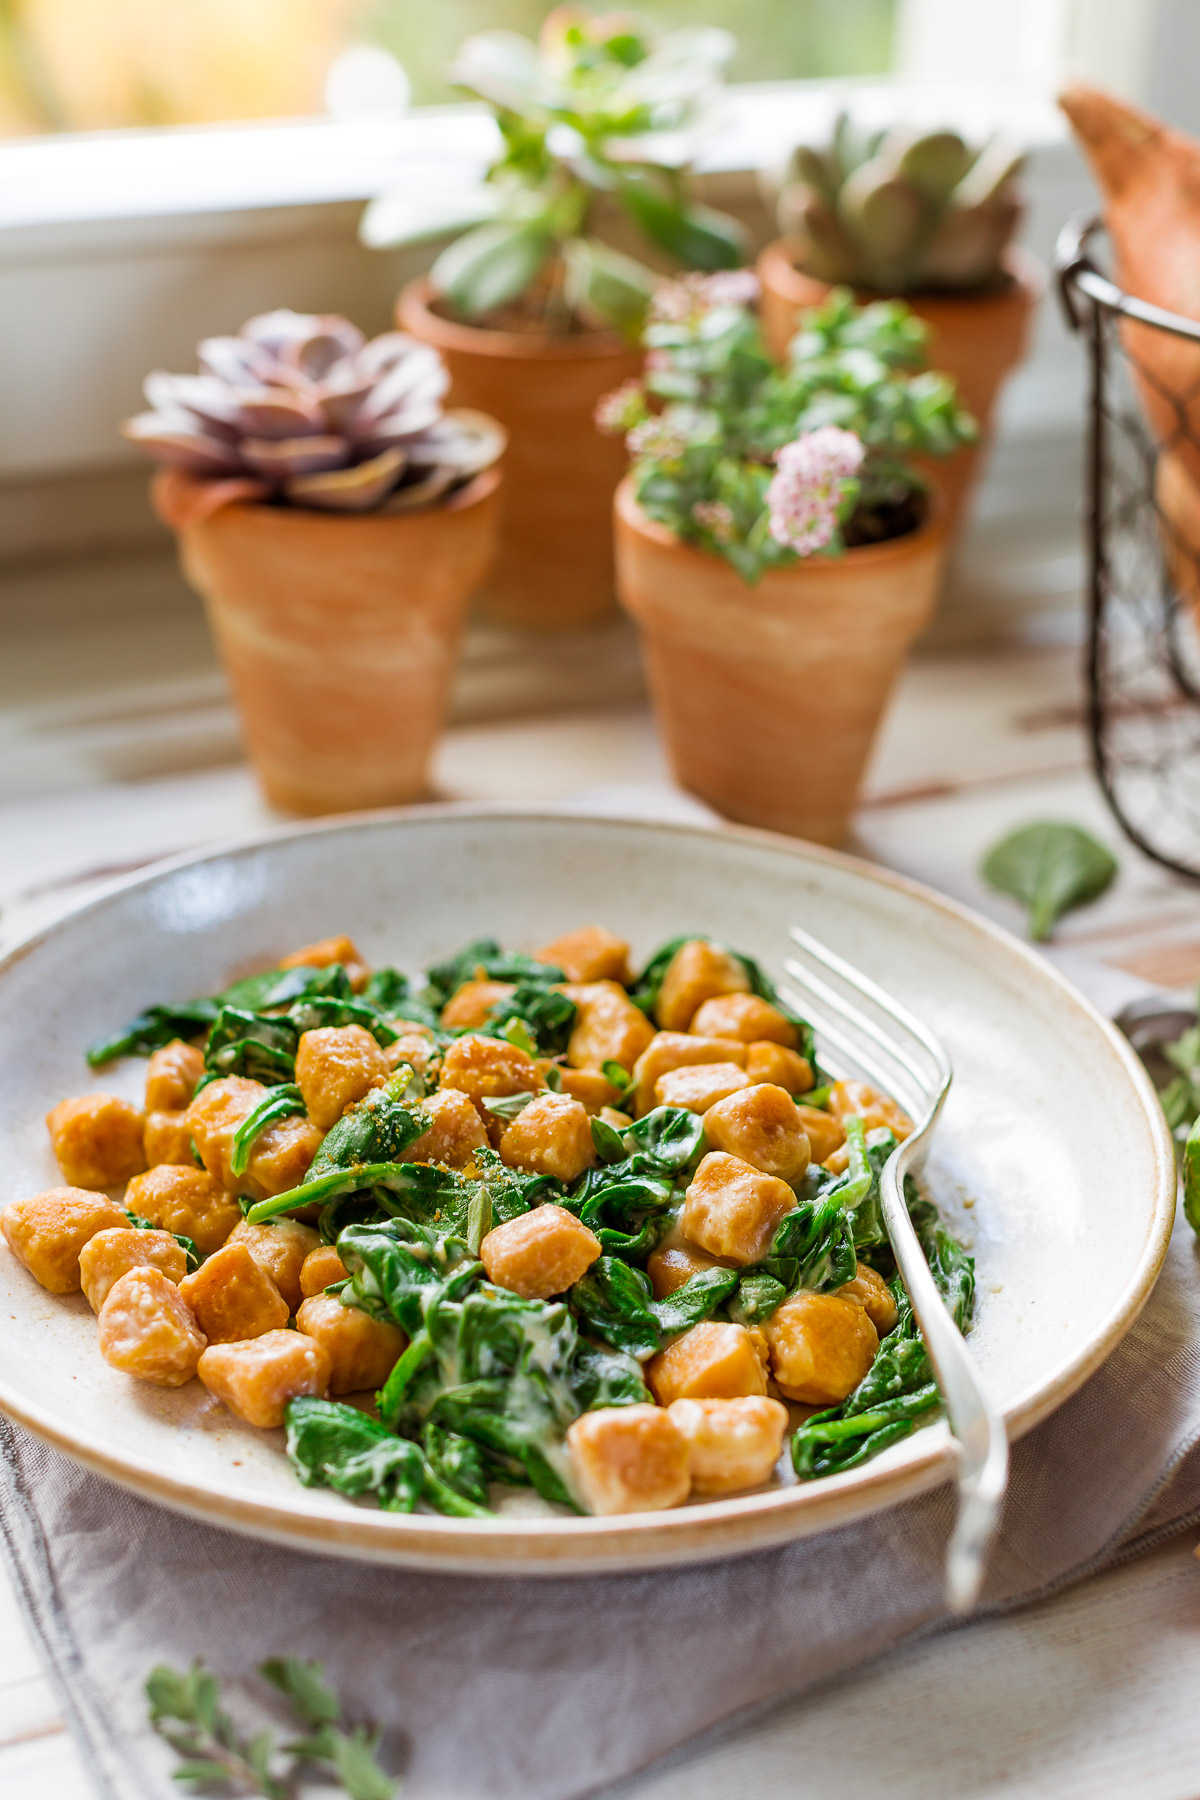 vegan SWEET POTATO GNOCCHI with CAULIFLOWER SAUCE and spinach GNOCCHI DI PATATE DOLCI VEGAN di farro integrale con SALSA di CAVOLFIORE light #sweetpotato #vegan #cauliflower #gnocchi